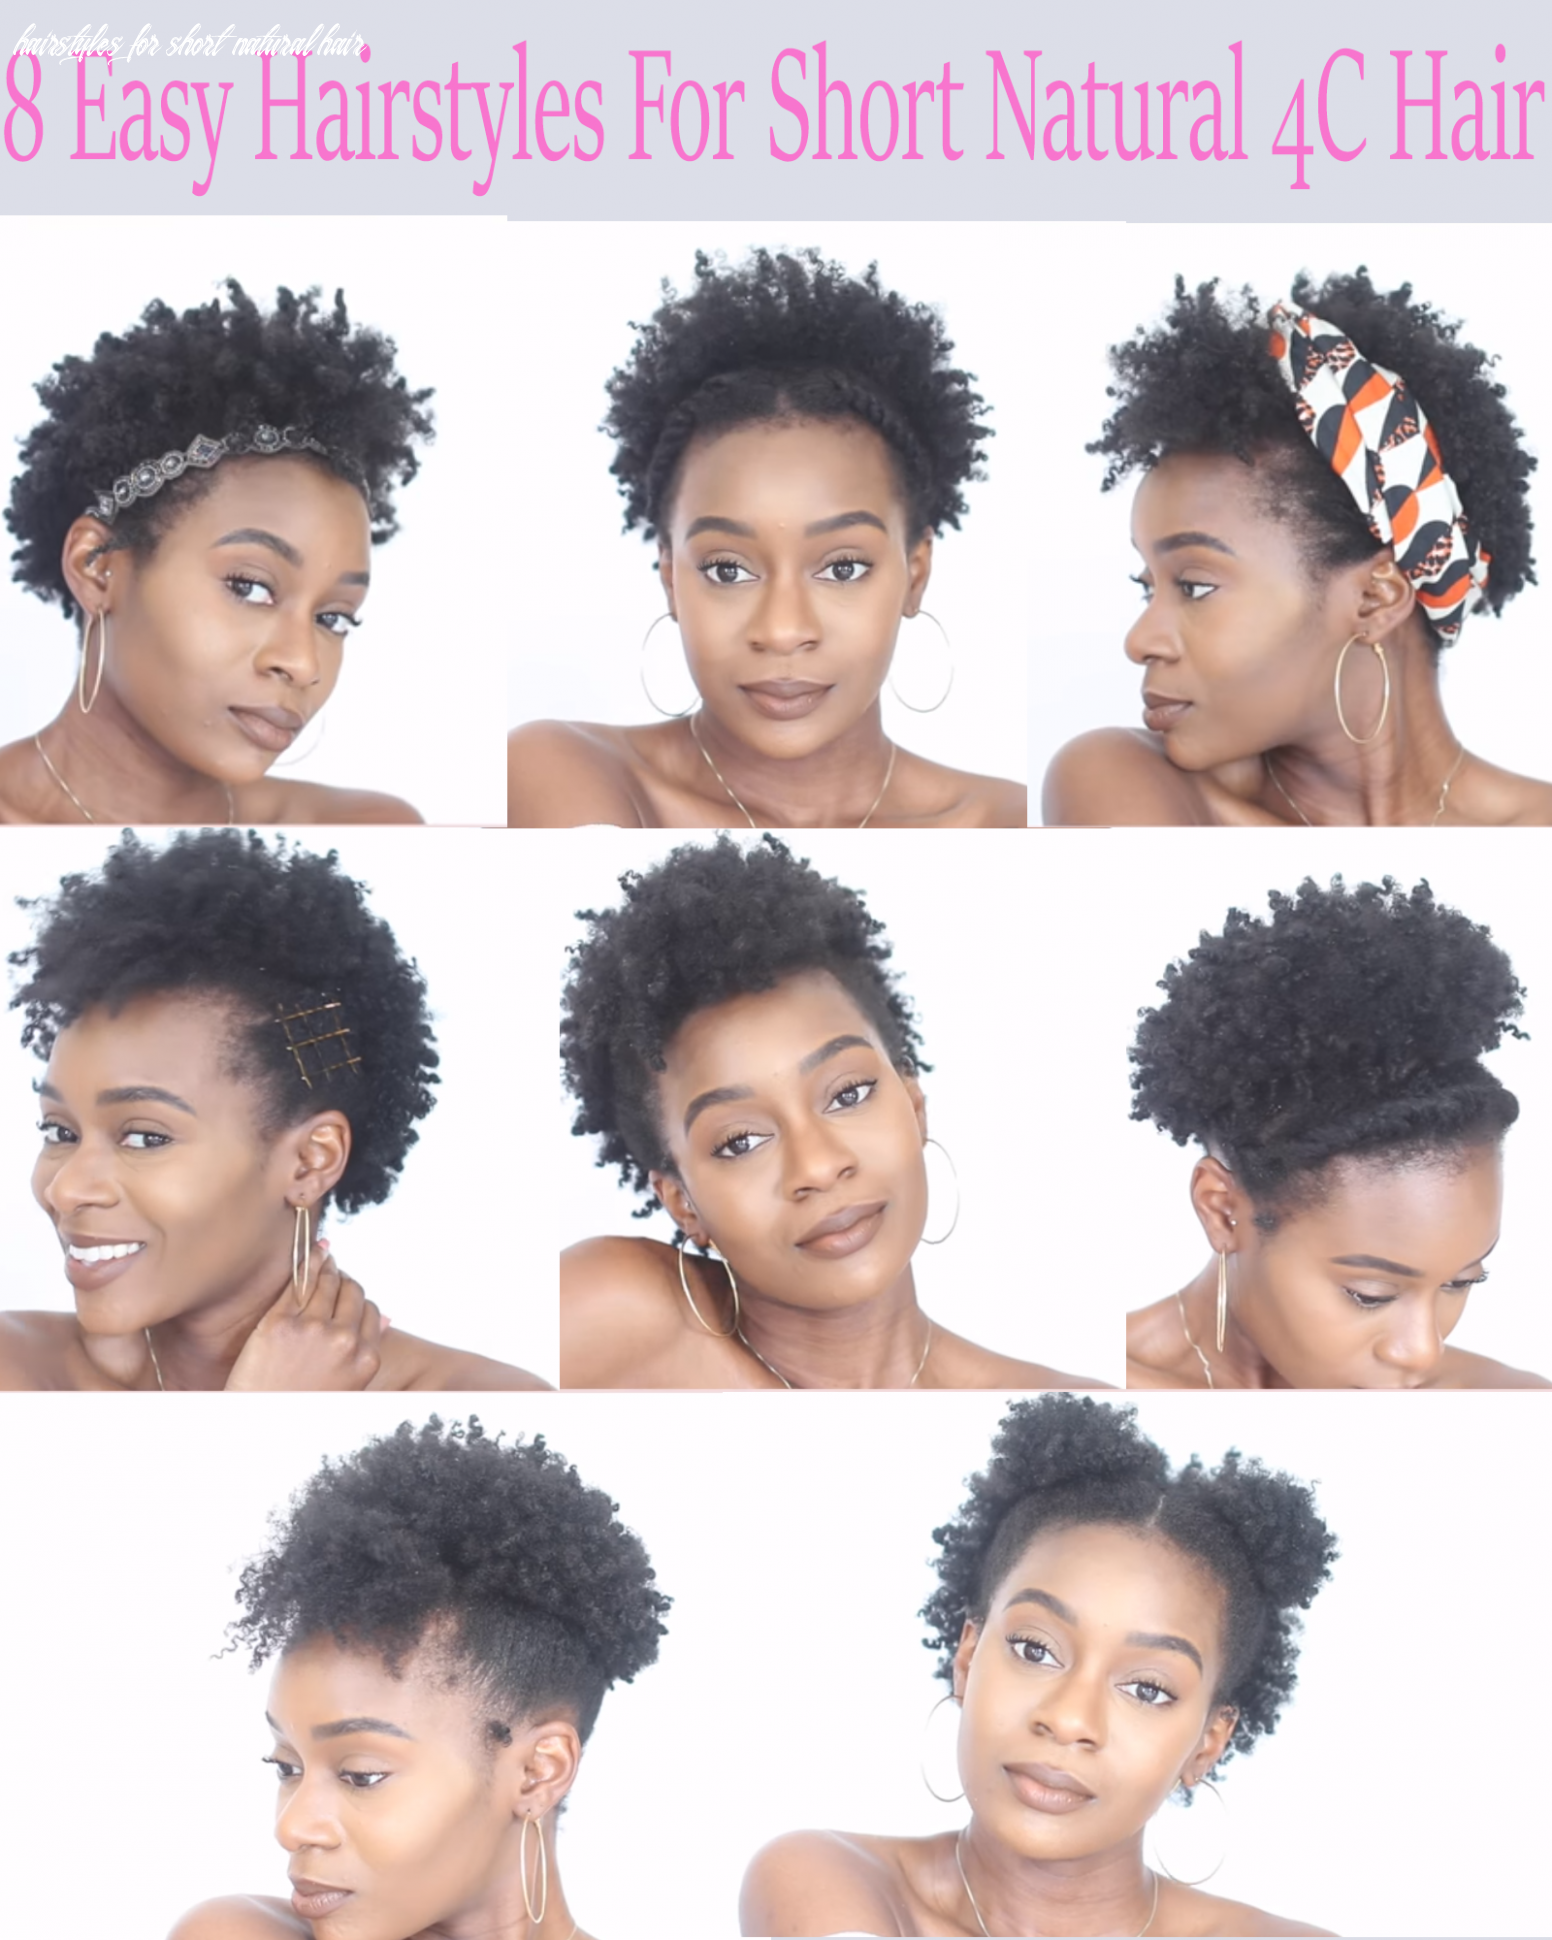 9 easy protective hairstyles for short natural 9c hair that will